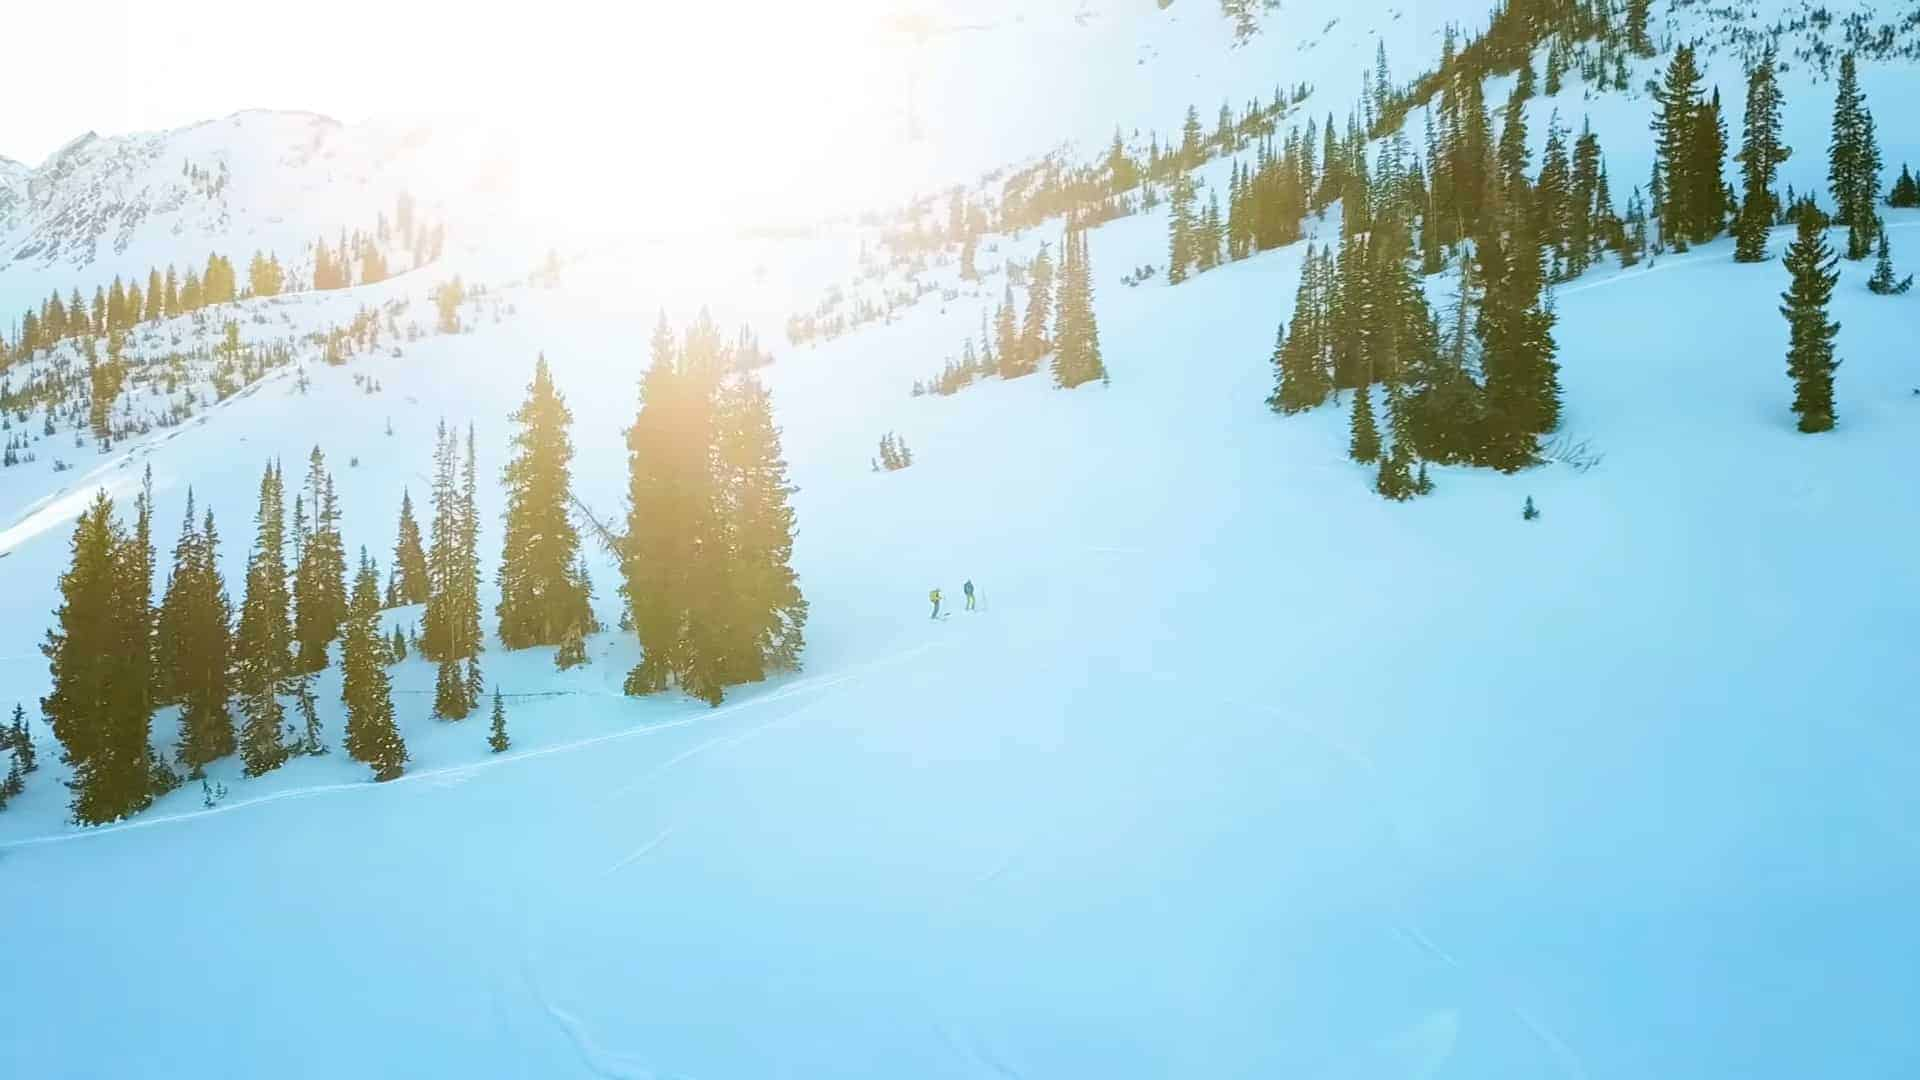 Backcountry Skiing Inspired Summit (5)